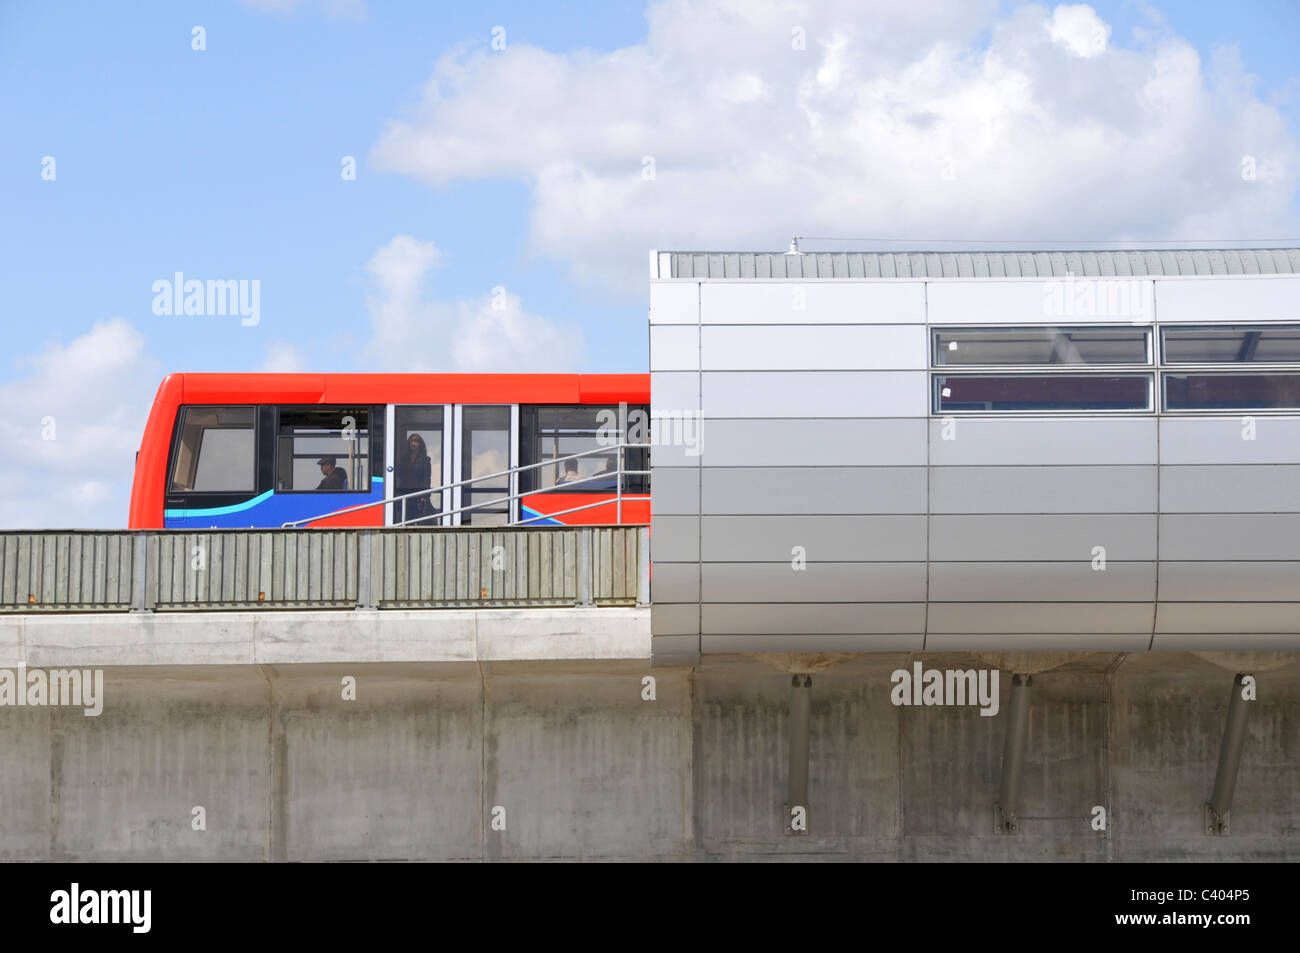 London Pontoon Dock station on elevated section of the Docklands Light Railway run by Serco - Stock Image